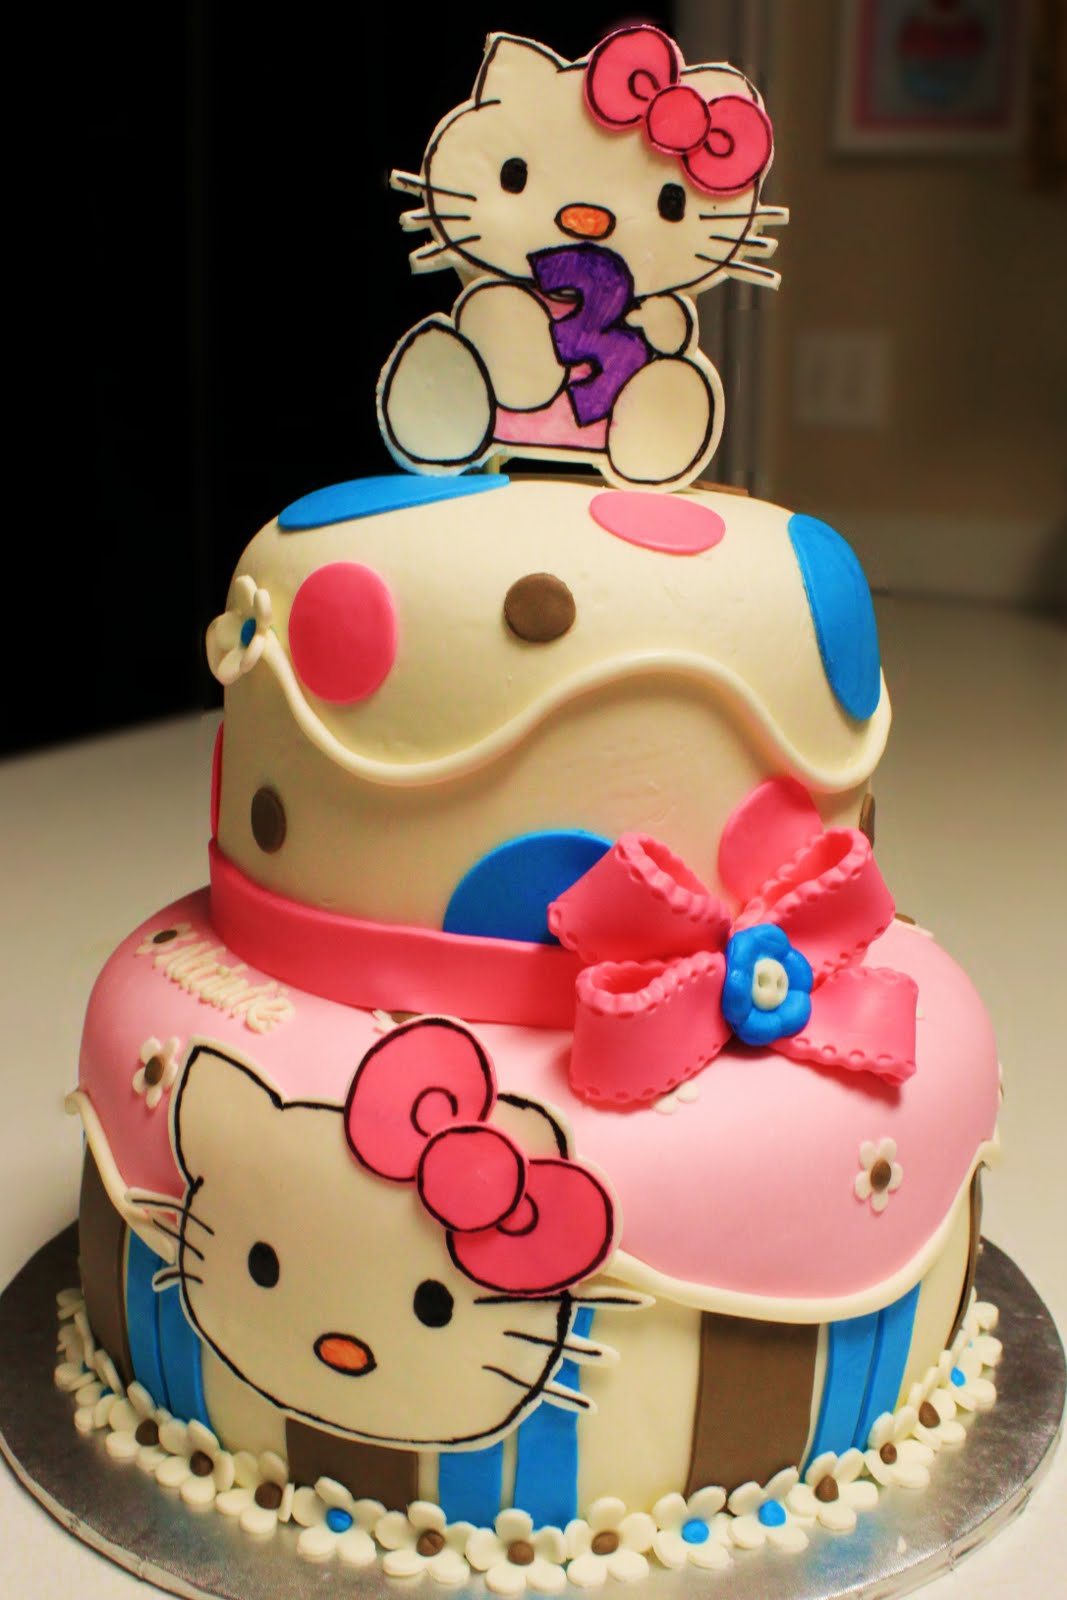 Images Of A Hello Kitty Cake : Layers of Love: Two Tier Hello Kitty Cake